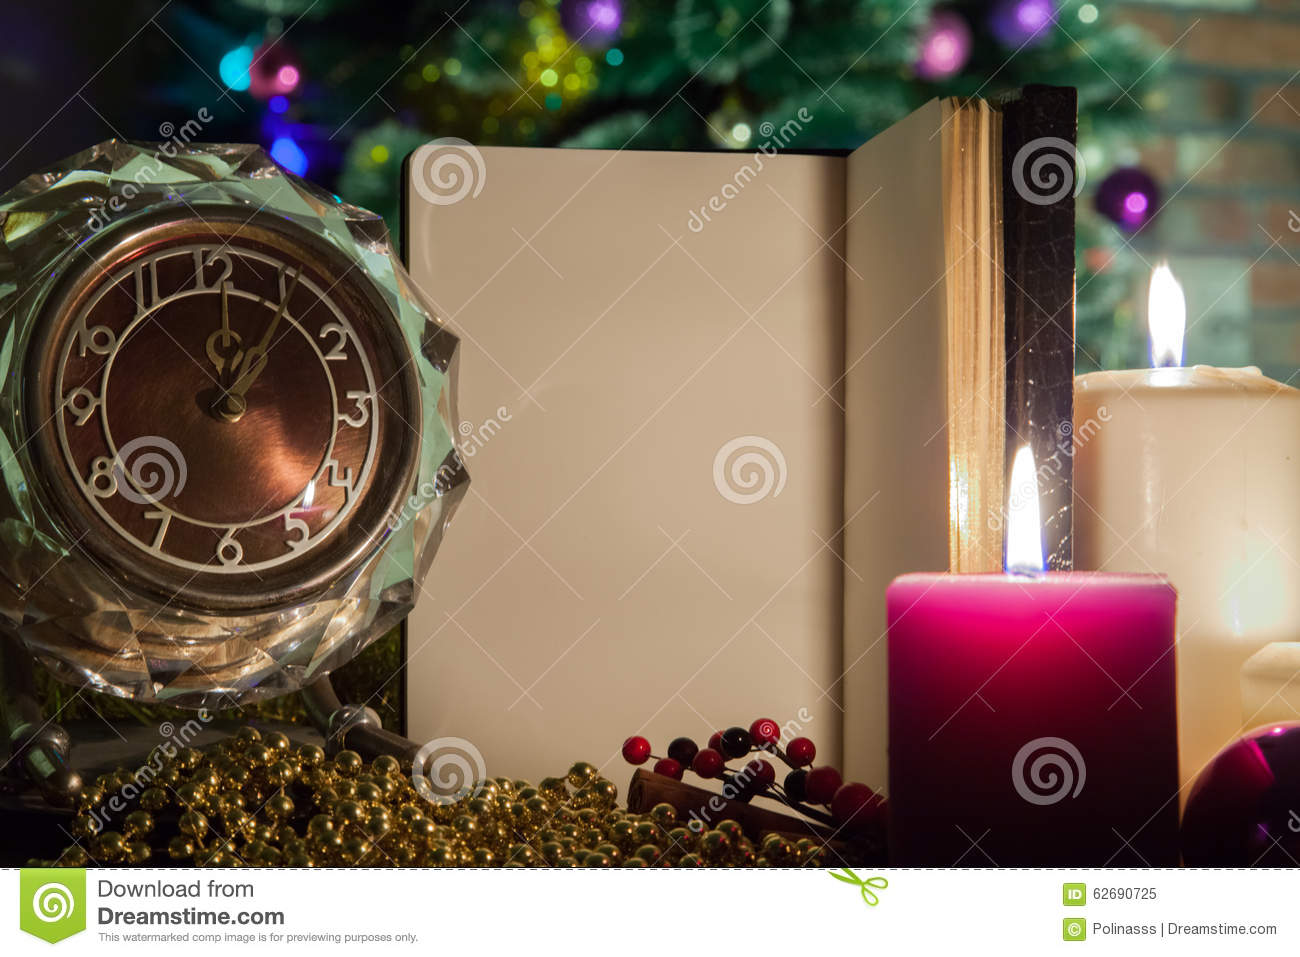 Christmas Greetings On An Open Notebook With A Clock And A Candle In